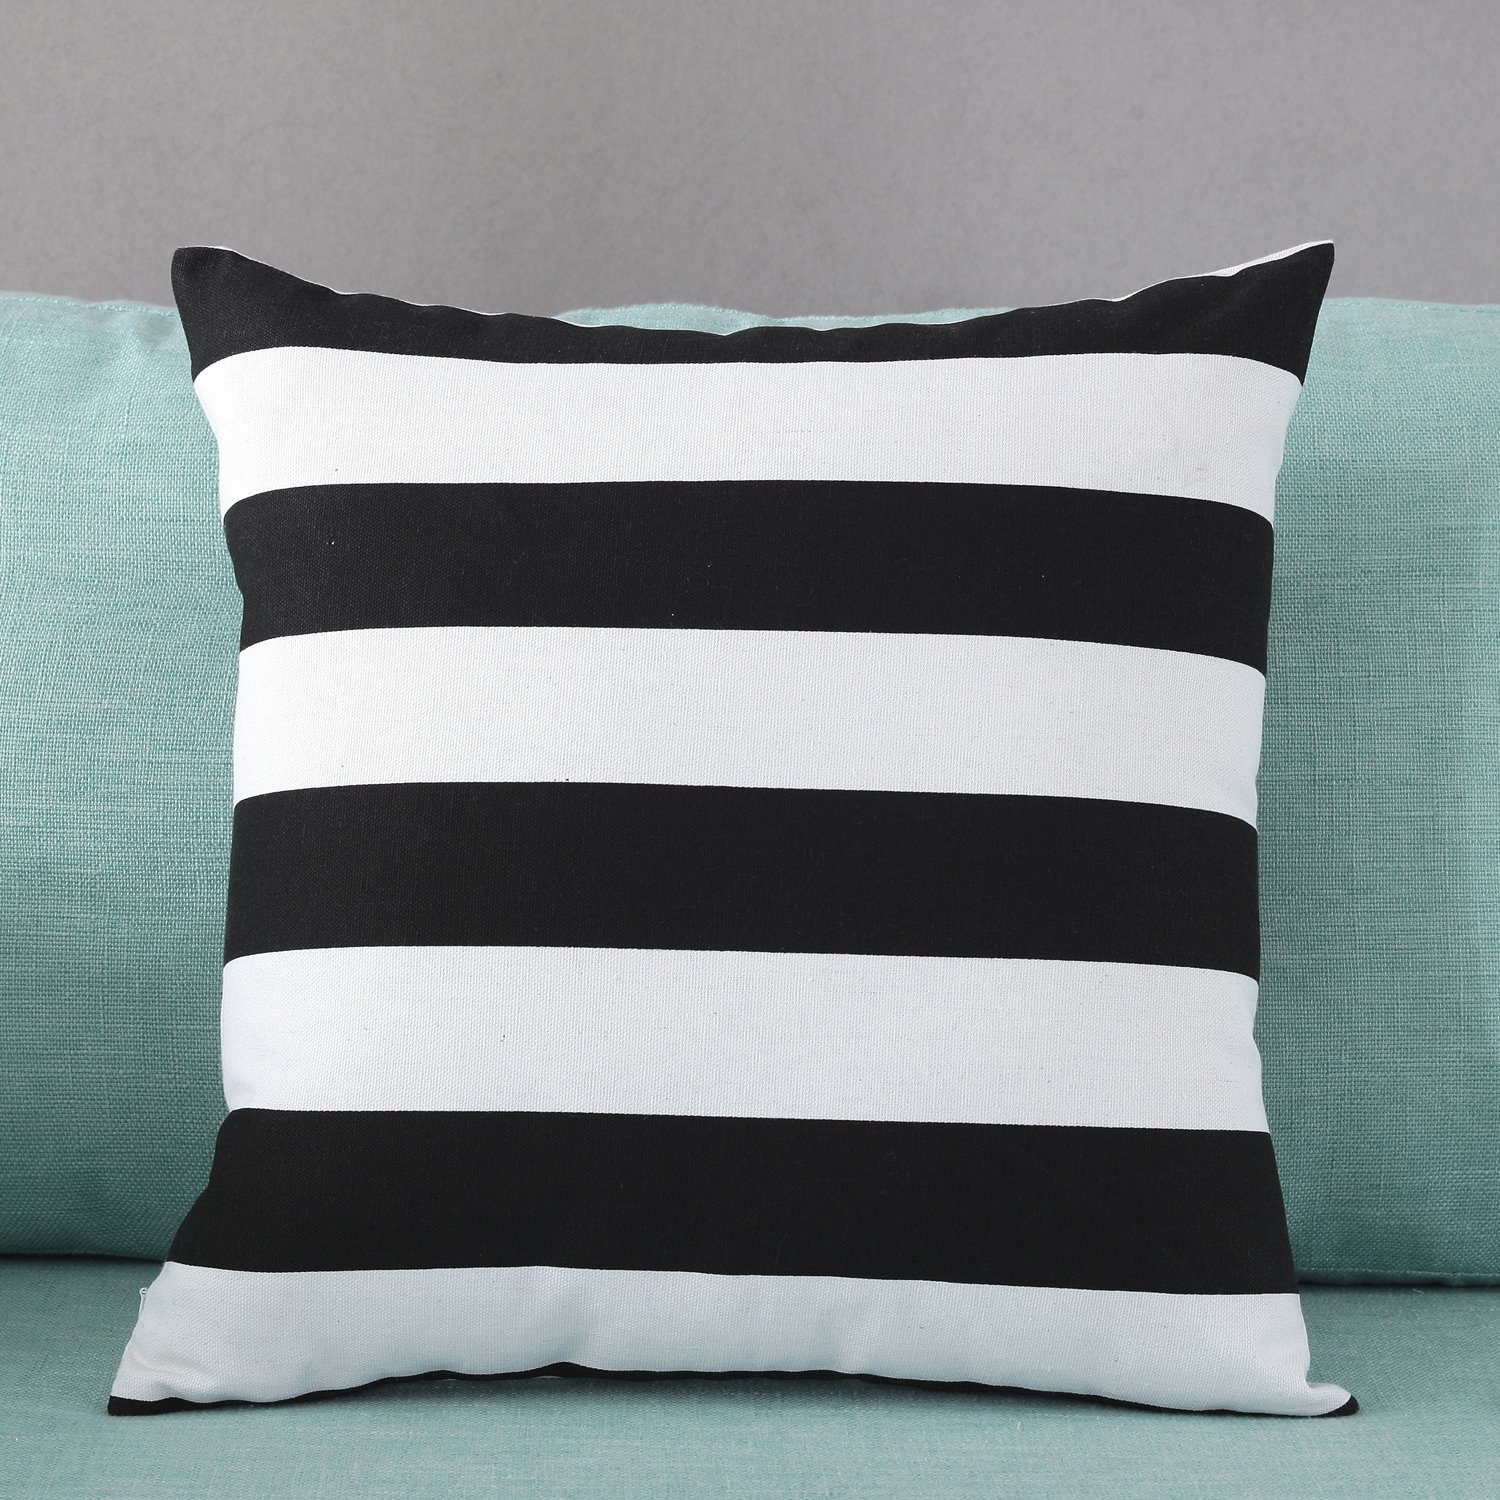 30x50cm TAOSON Home Decorative Cotton Canvas Square Toss Pillowcase Cushion Cover Black Stripe Throw Pillow Case with Hidden Zipper Closure Only Cover No Insert 12x20